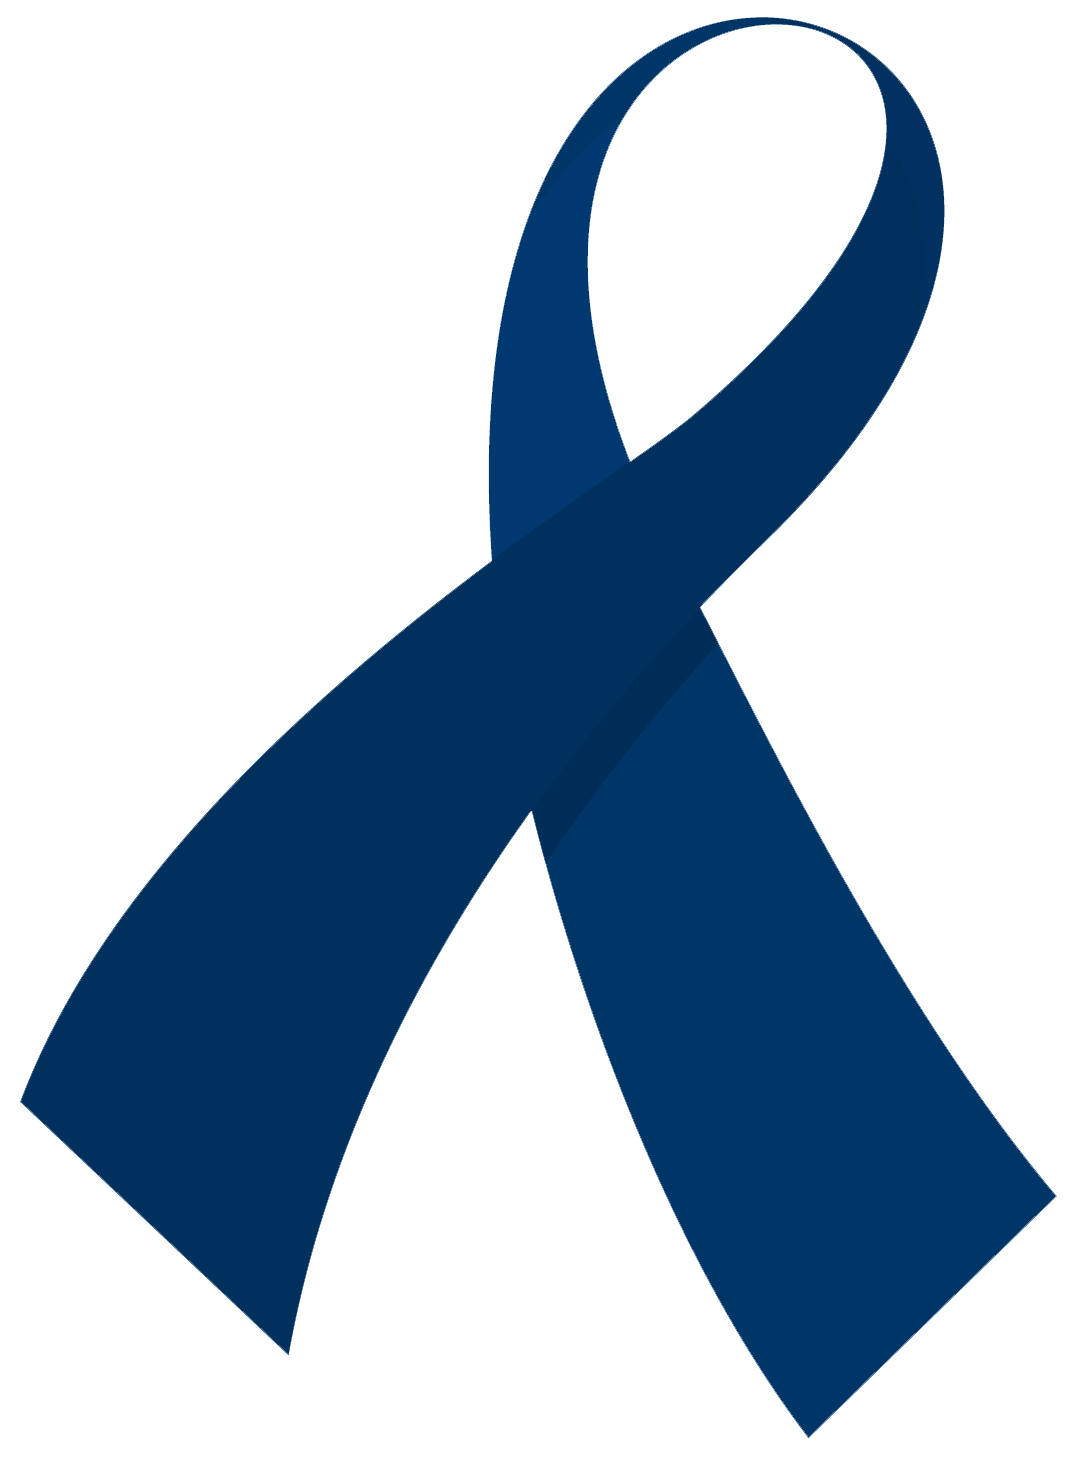 1077x1469 Cancer Ribbon Images Images Hd Download